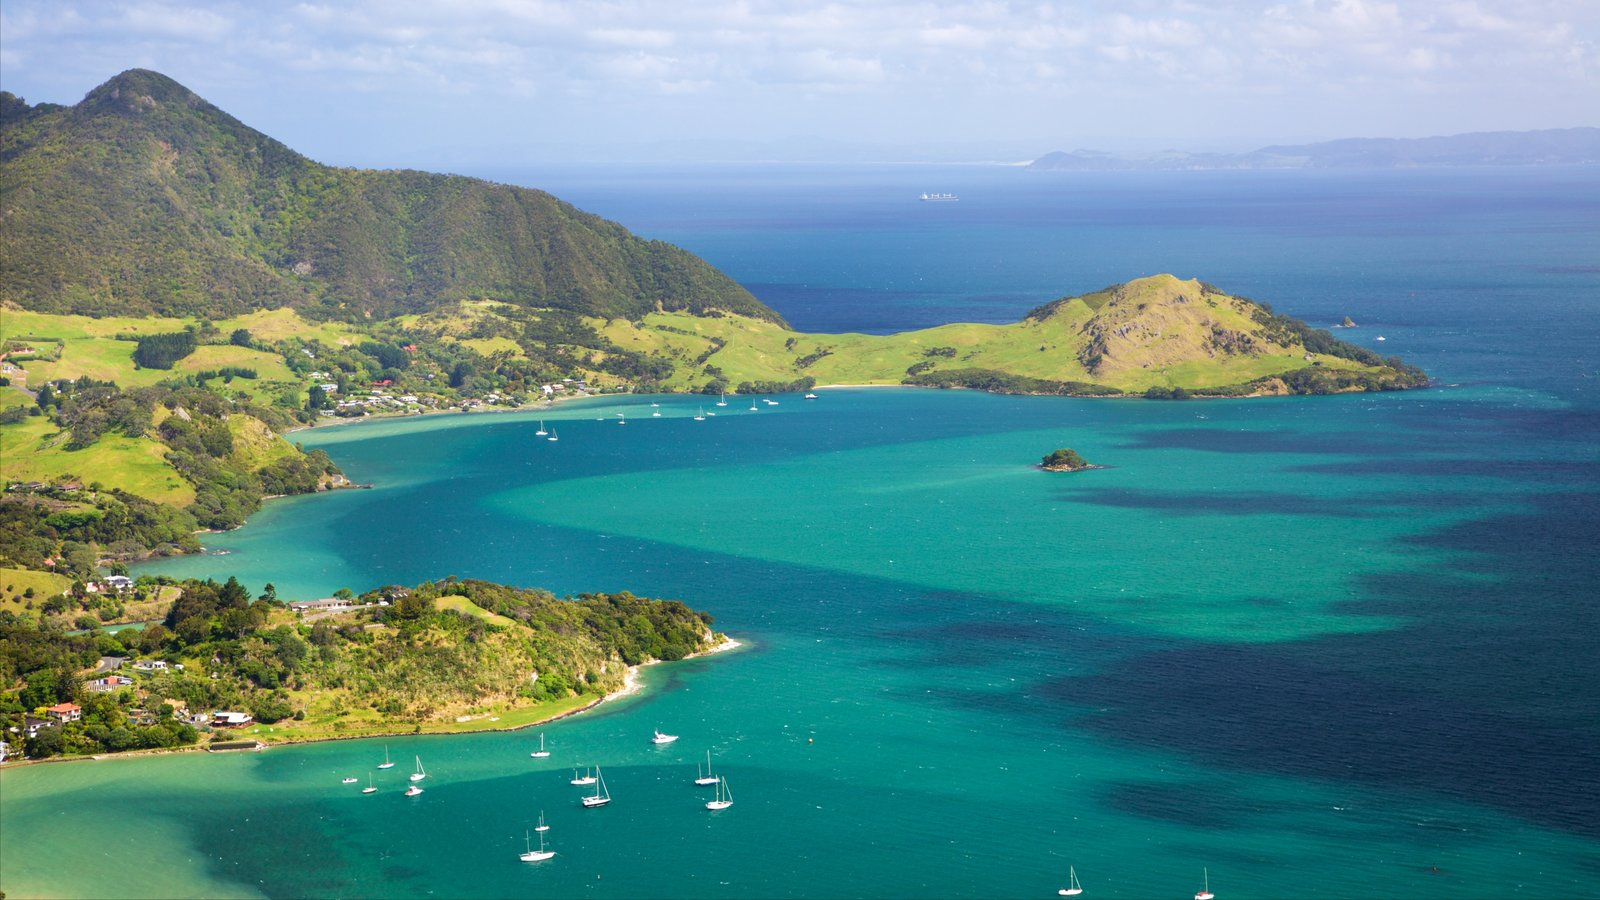 Mount Manaia which includes a bay or harbor, a coastal town and mountains